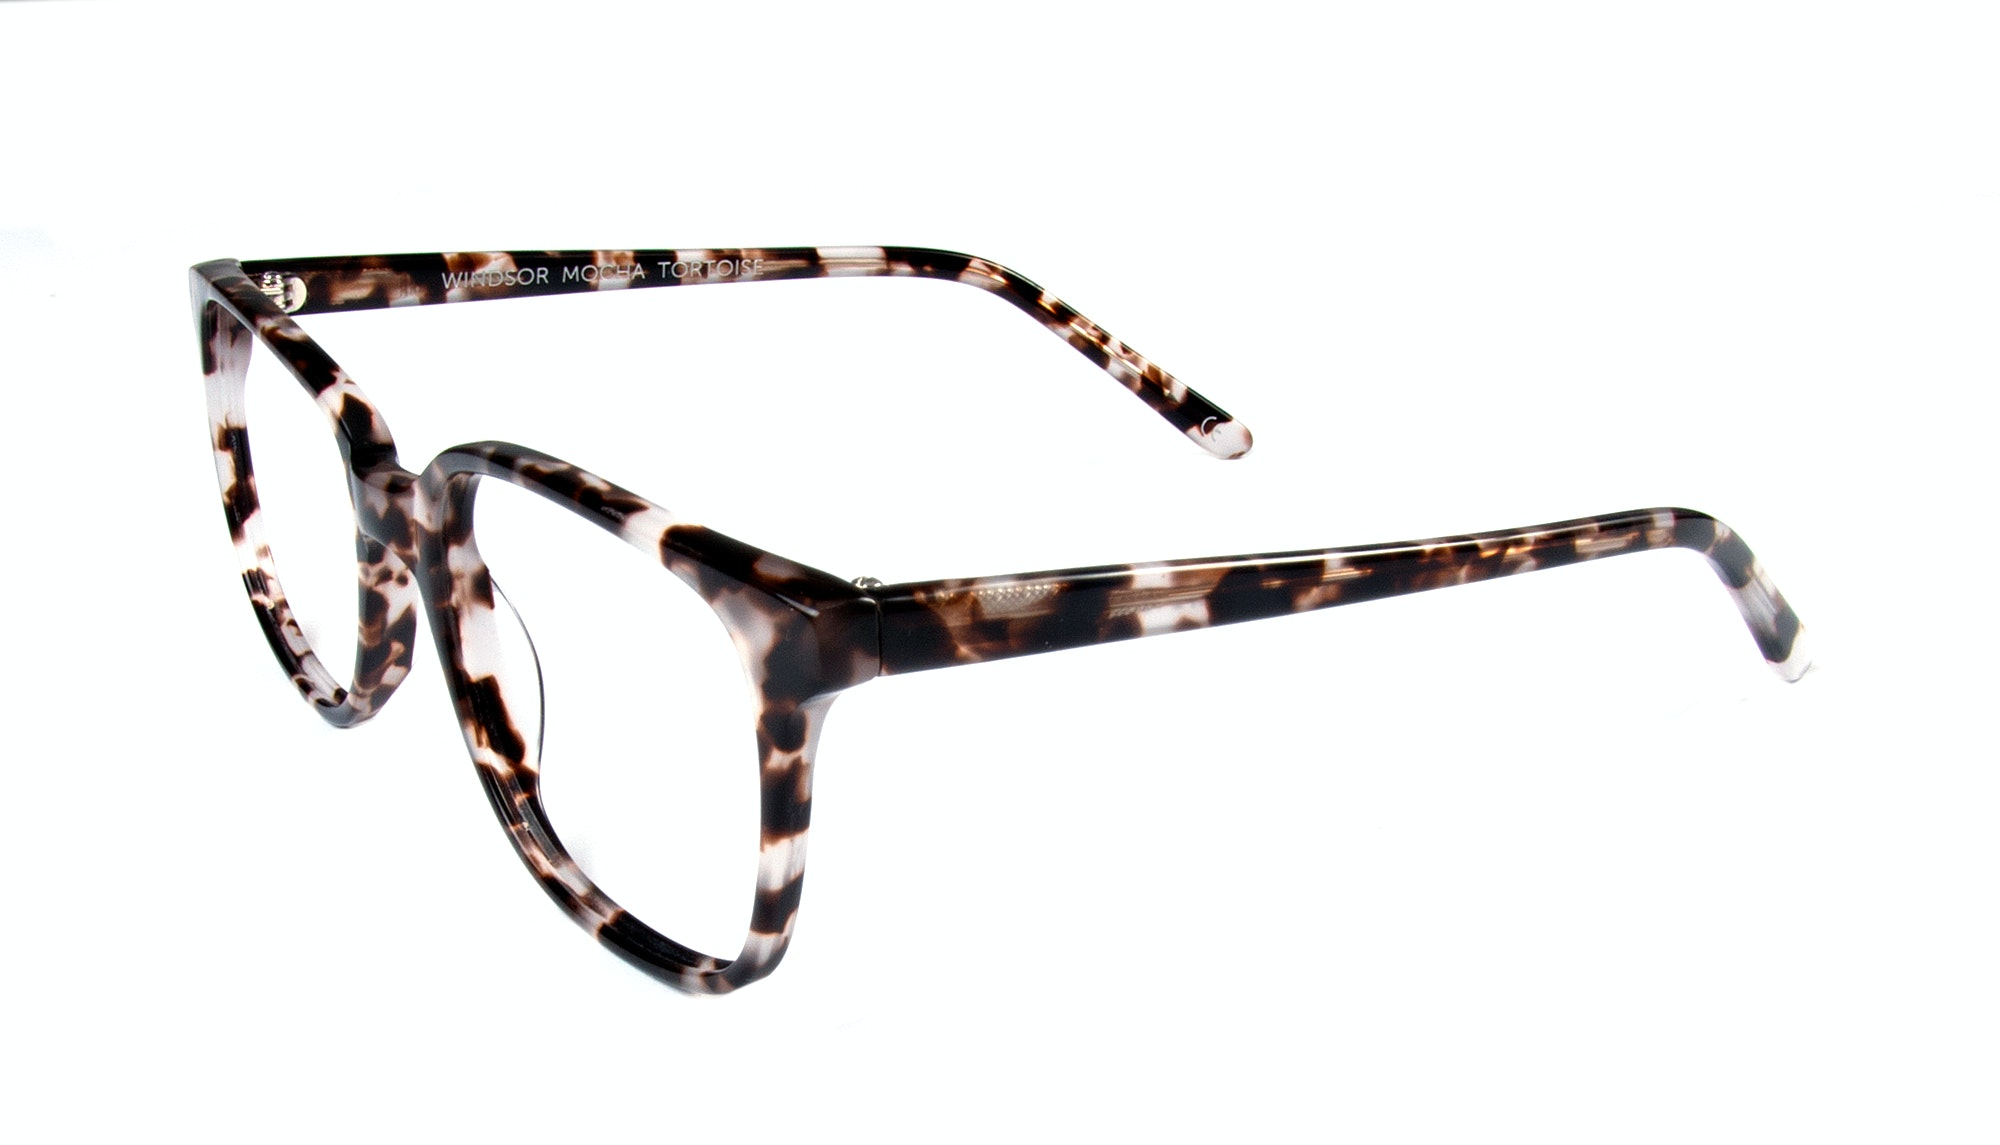 Affordable Fashion Glasses Rectangle Square Eyeglasses Men Women Windsor Mocha Tortoise Tilt